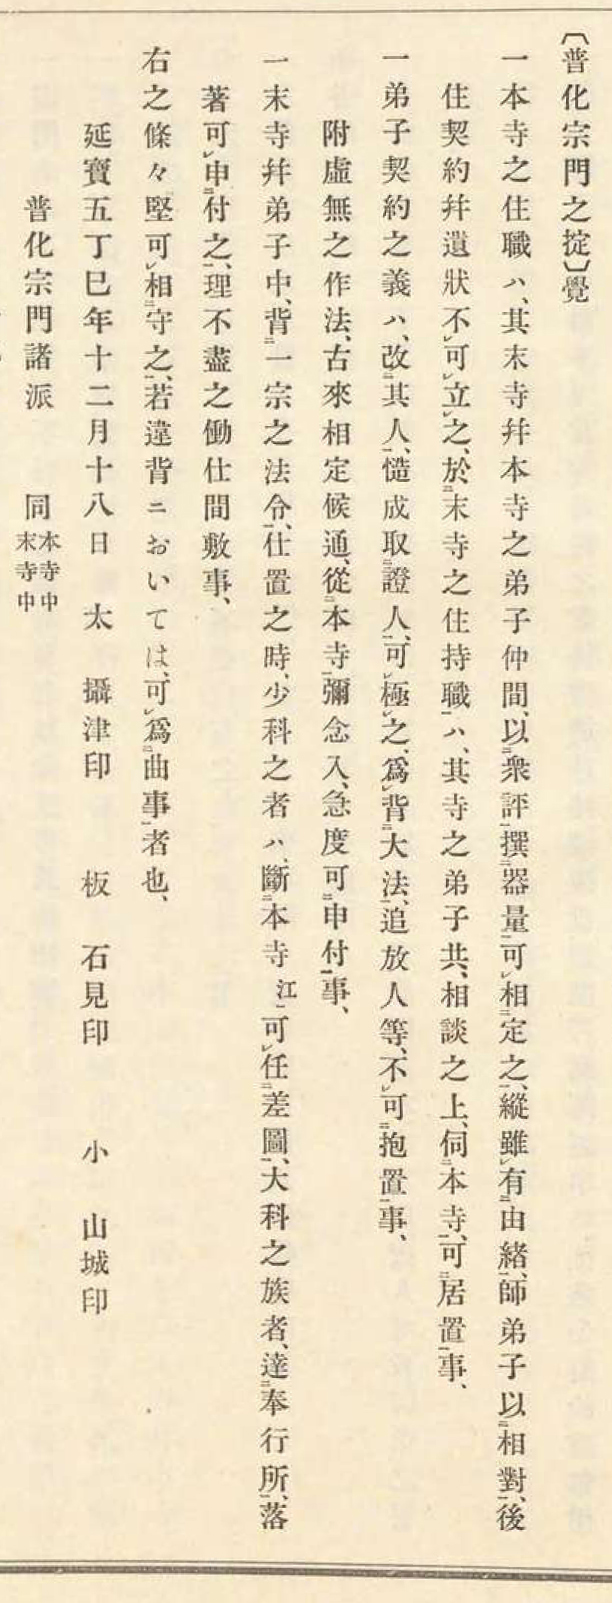 1678-1-11 Enpō 5 Oboe document reproduction printed in Koji Ruien, 1938 edition